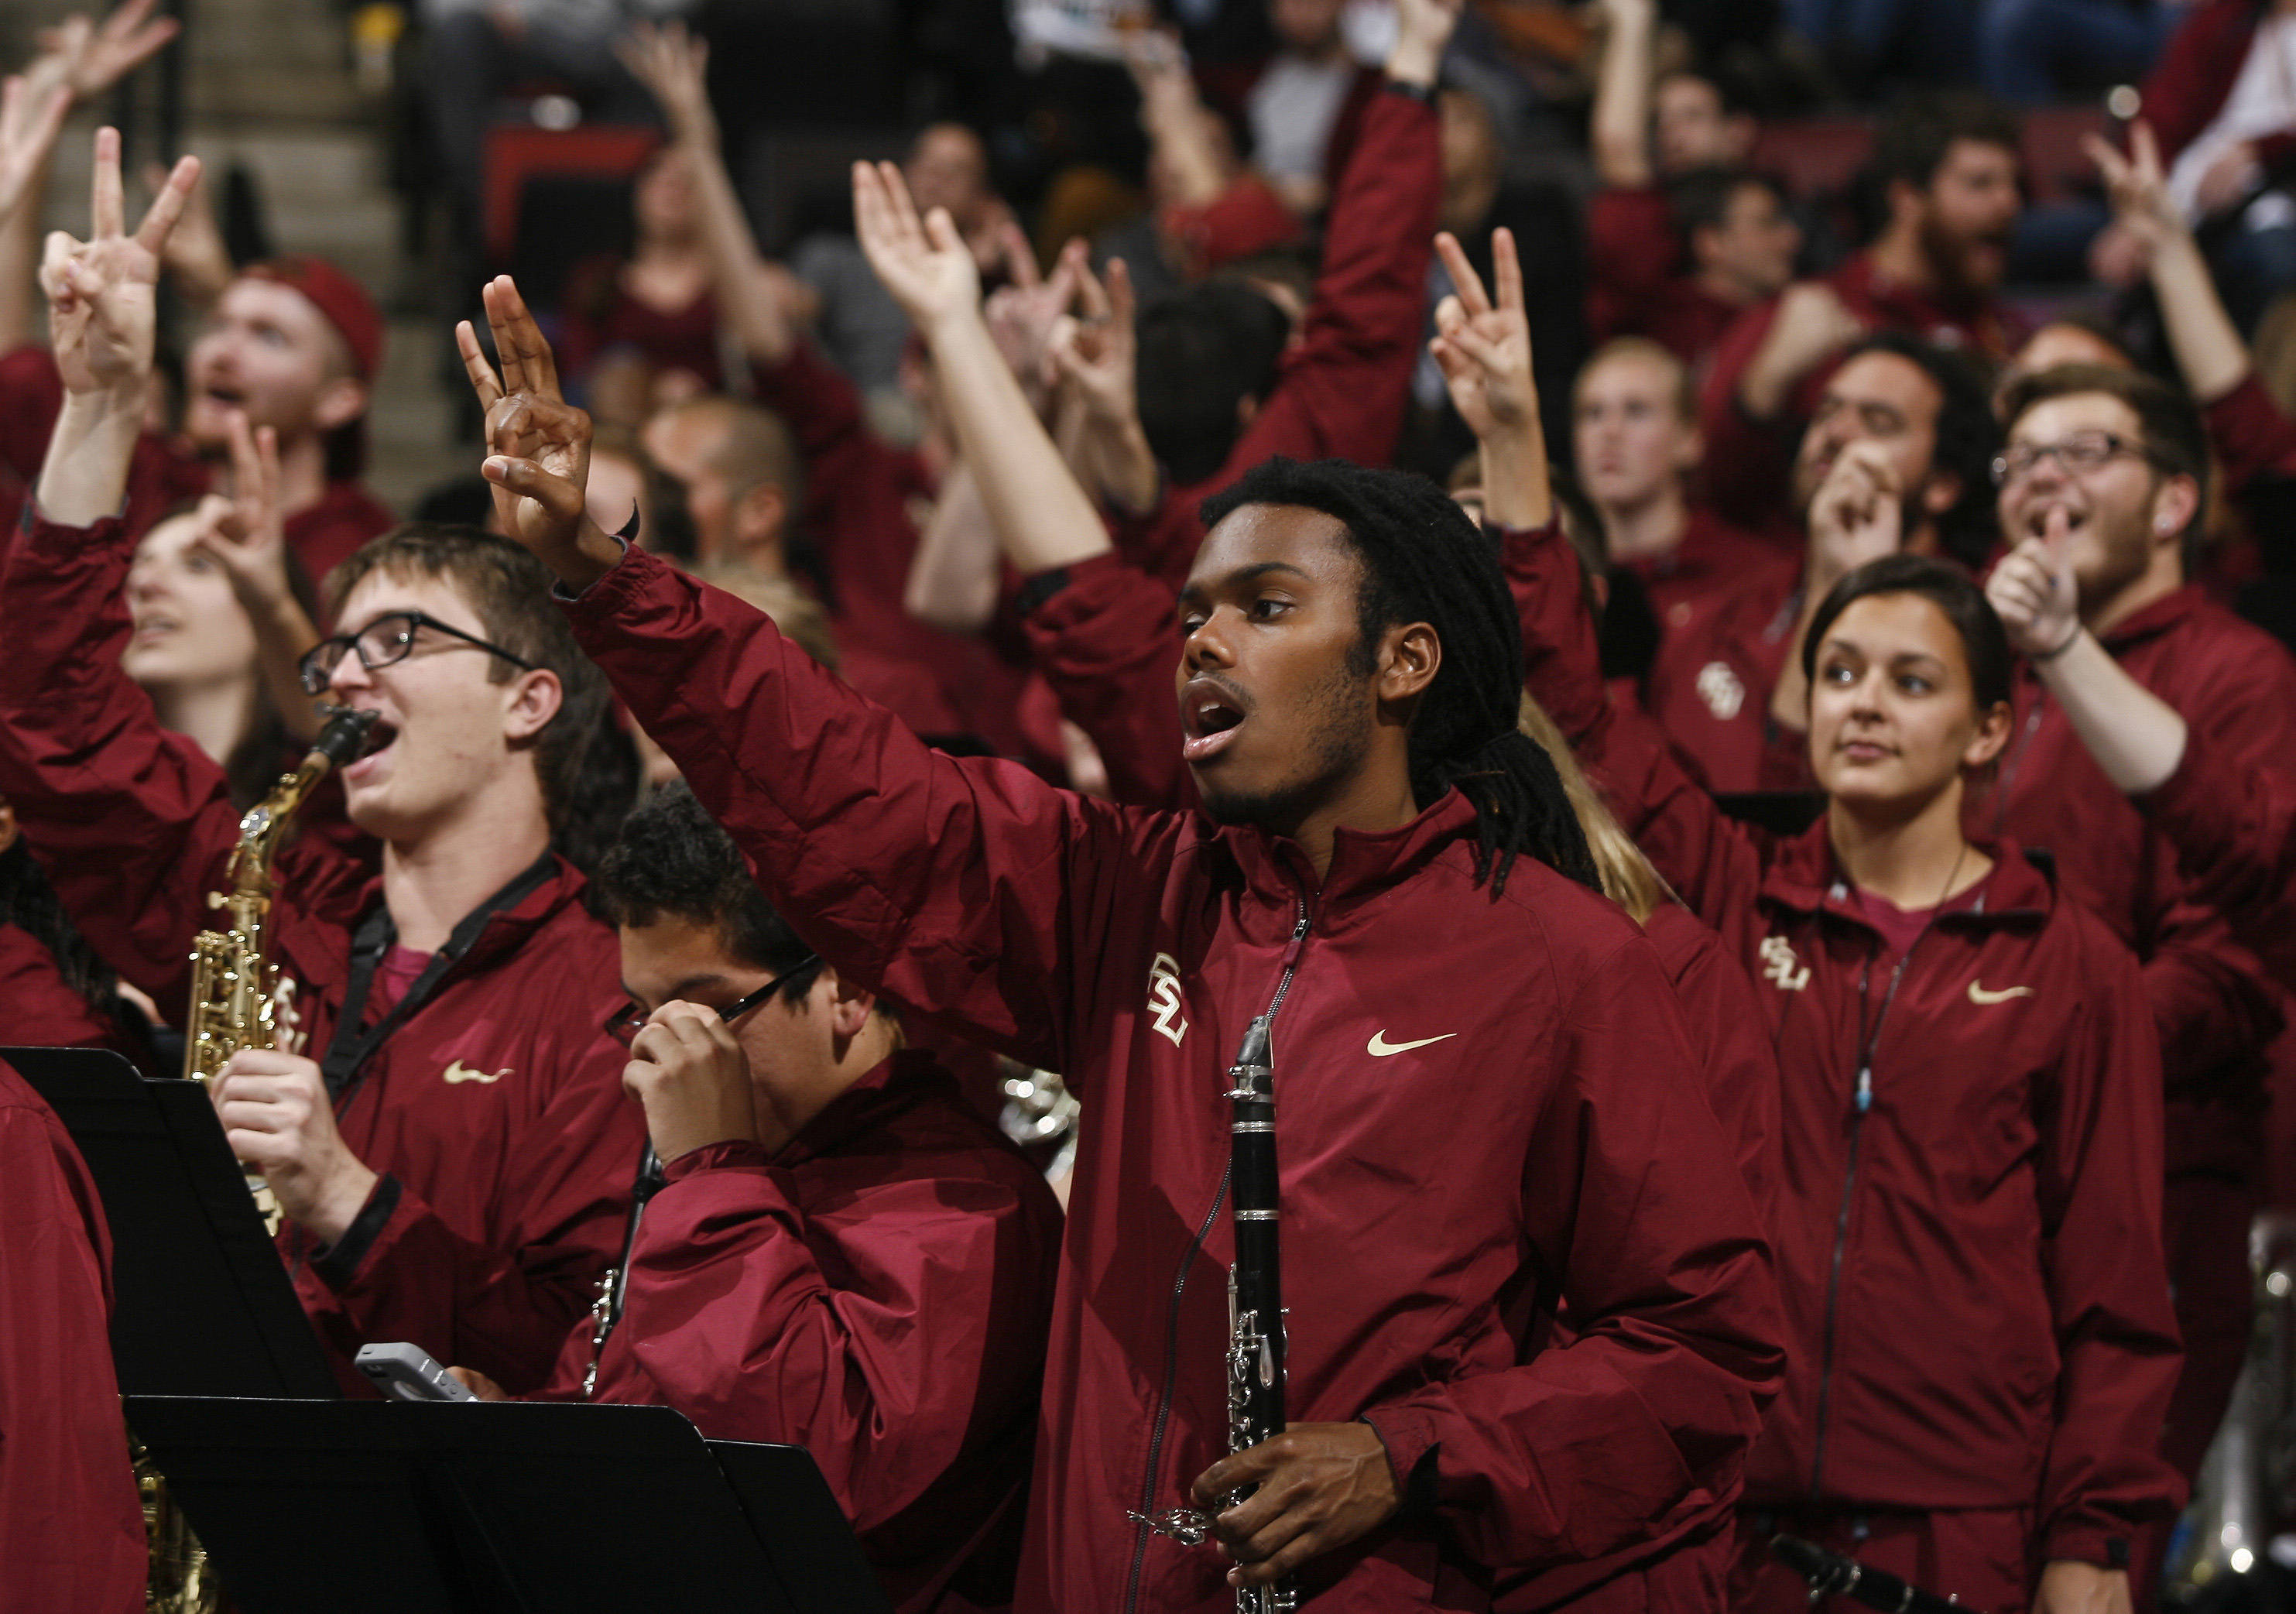 Jan 21, 2014; Tallahassee, FL, USA; The Seminoles pep band Seminoles Sound fires up the fans in the first half. Phil Sears-USA TODAY Sports